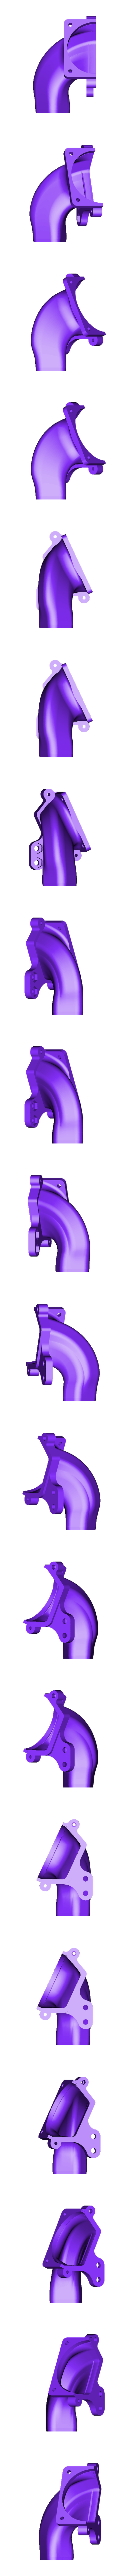 FangUpLeft.stl Download free STL file Fang for Alfawise U20 Printer • 3D print template, uhgues